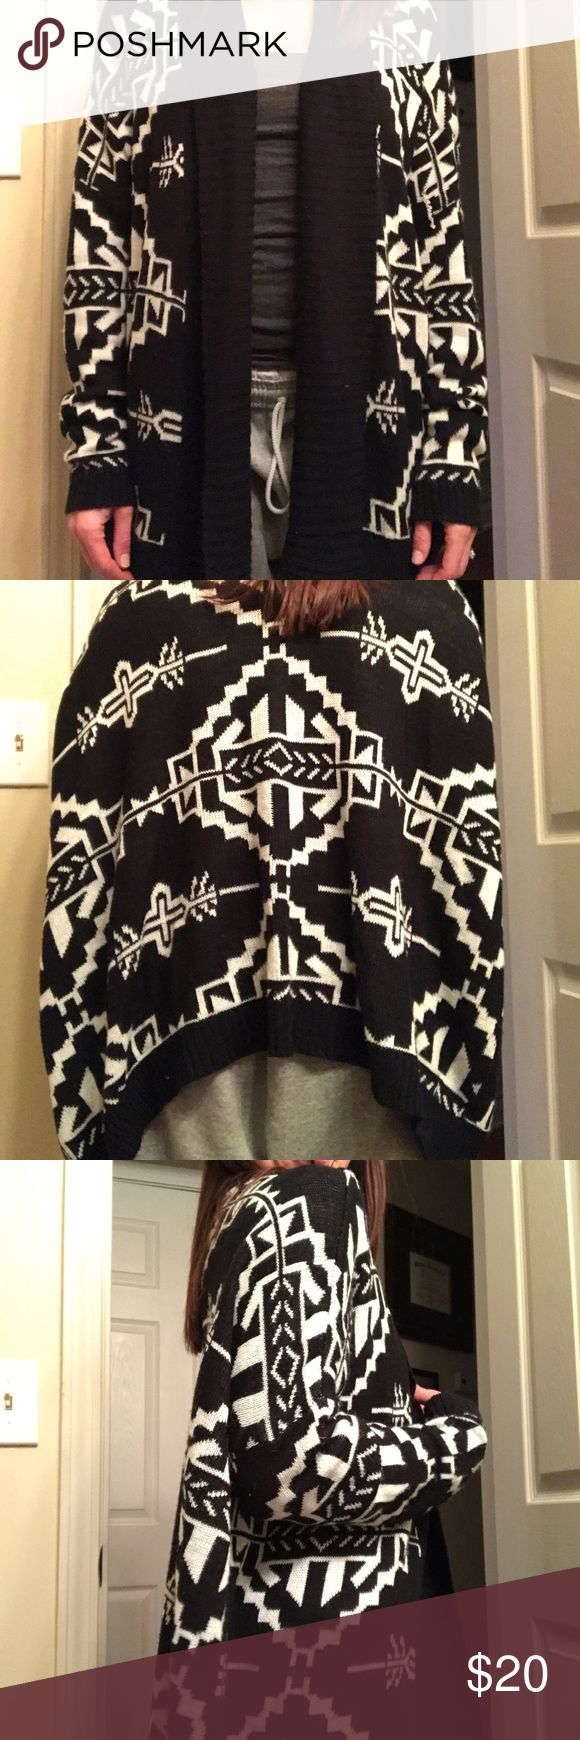 """Oversized tribal print cardigan Great condition, worn once but I had to """"belt it up"""" because the """"oversized"""" is a little oversized for me! It's a """"Sm/Md"""" size but there's no size tag Francesca's Collections Sweaters Cardigans"""